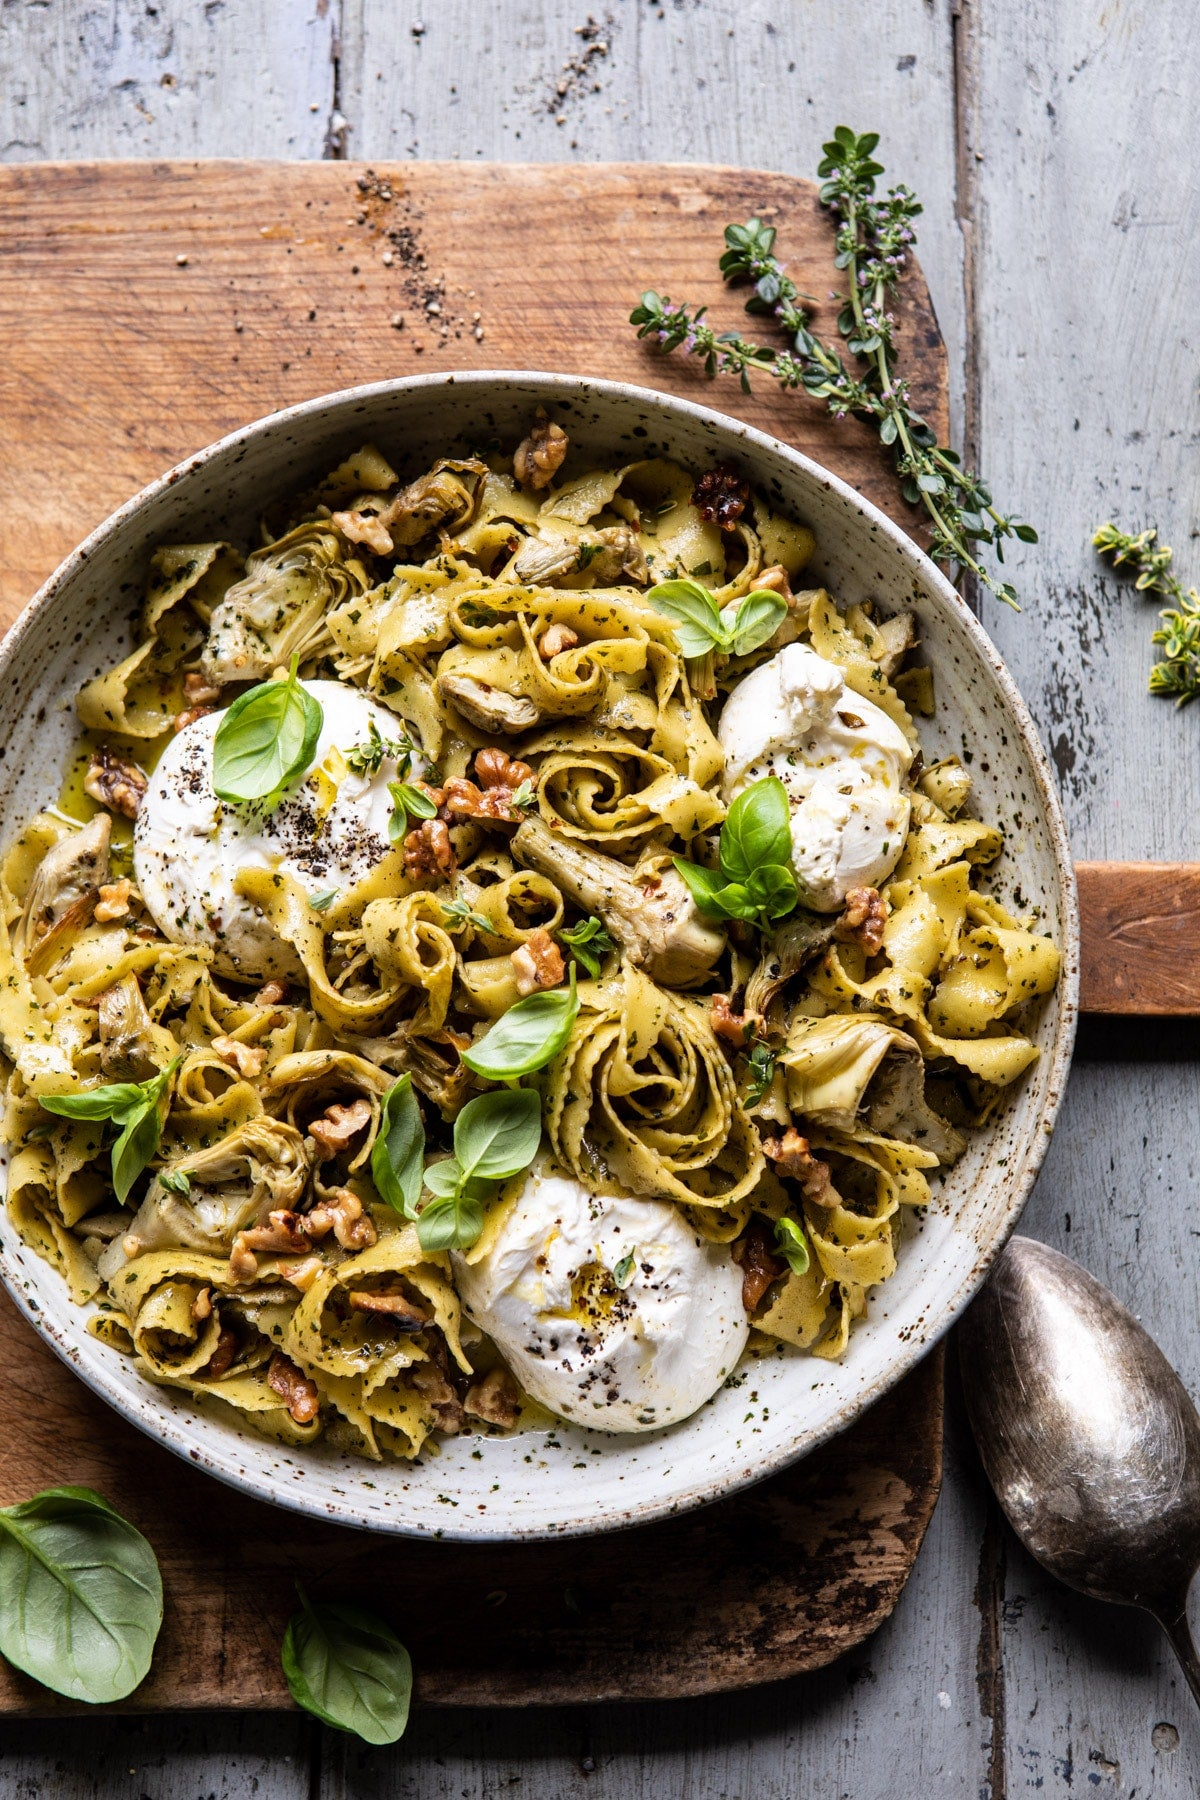 Roasted-Lemon-Artichoke-and-Browned-Butter-Pasta-1